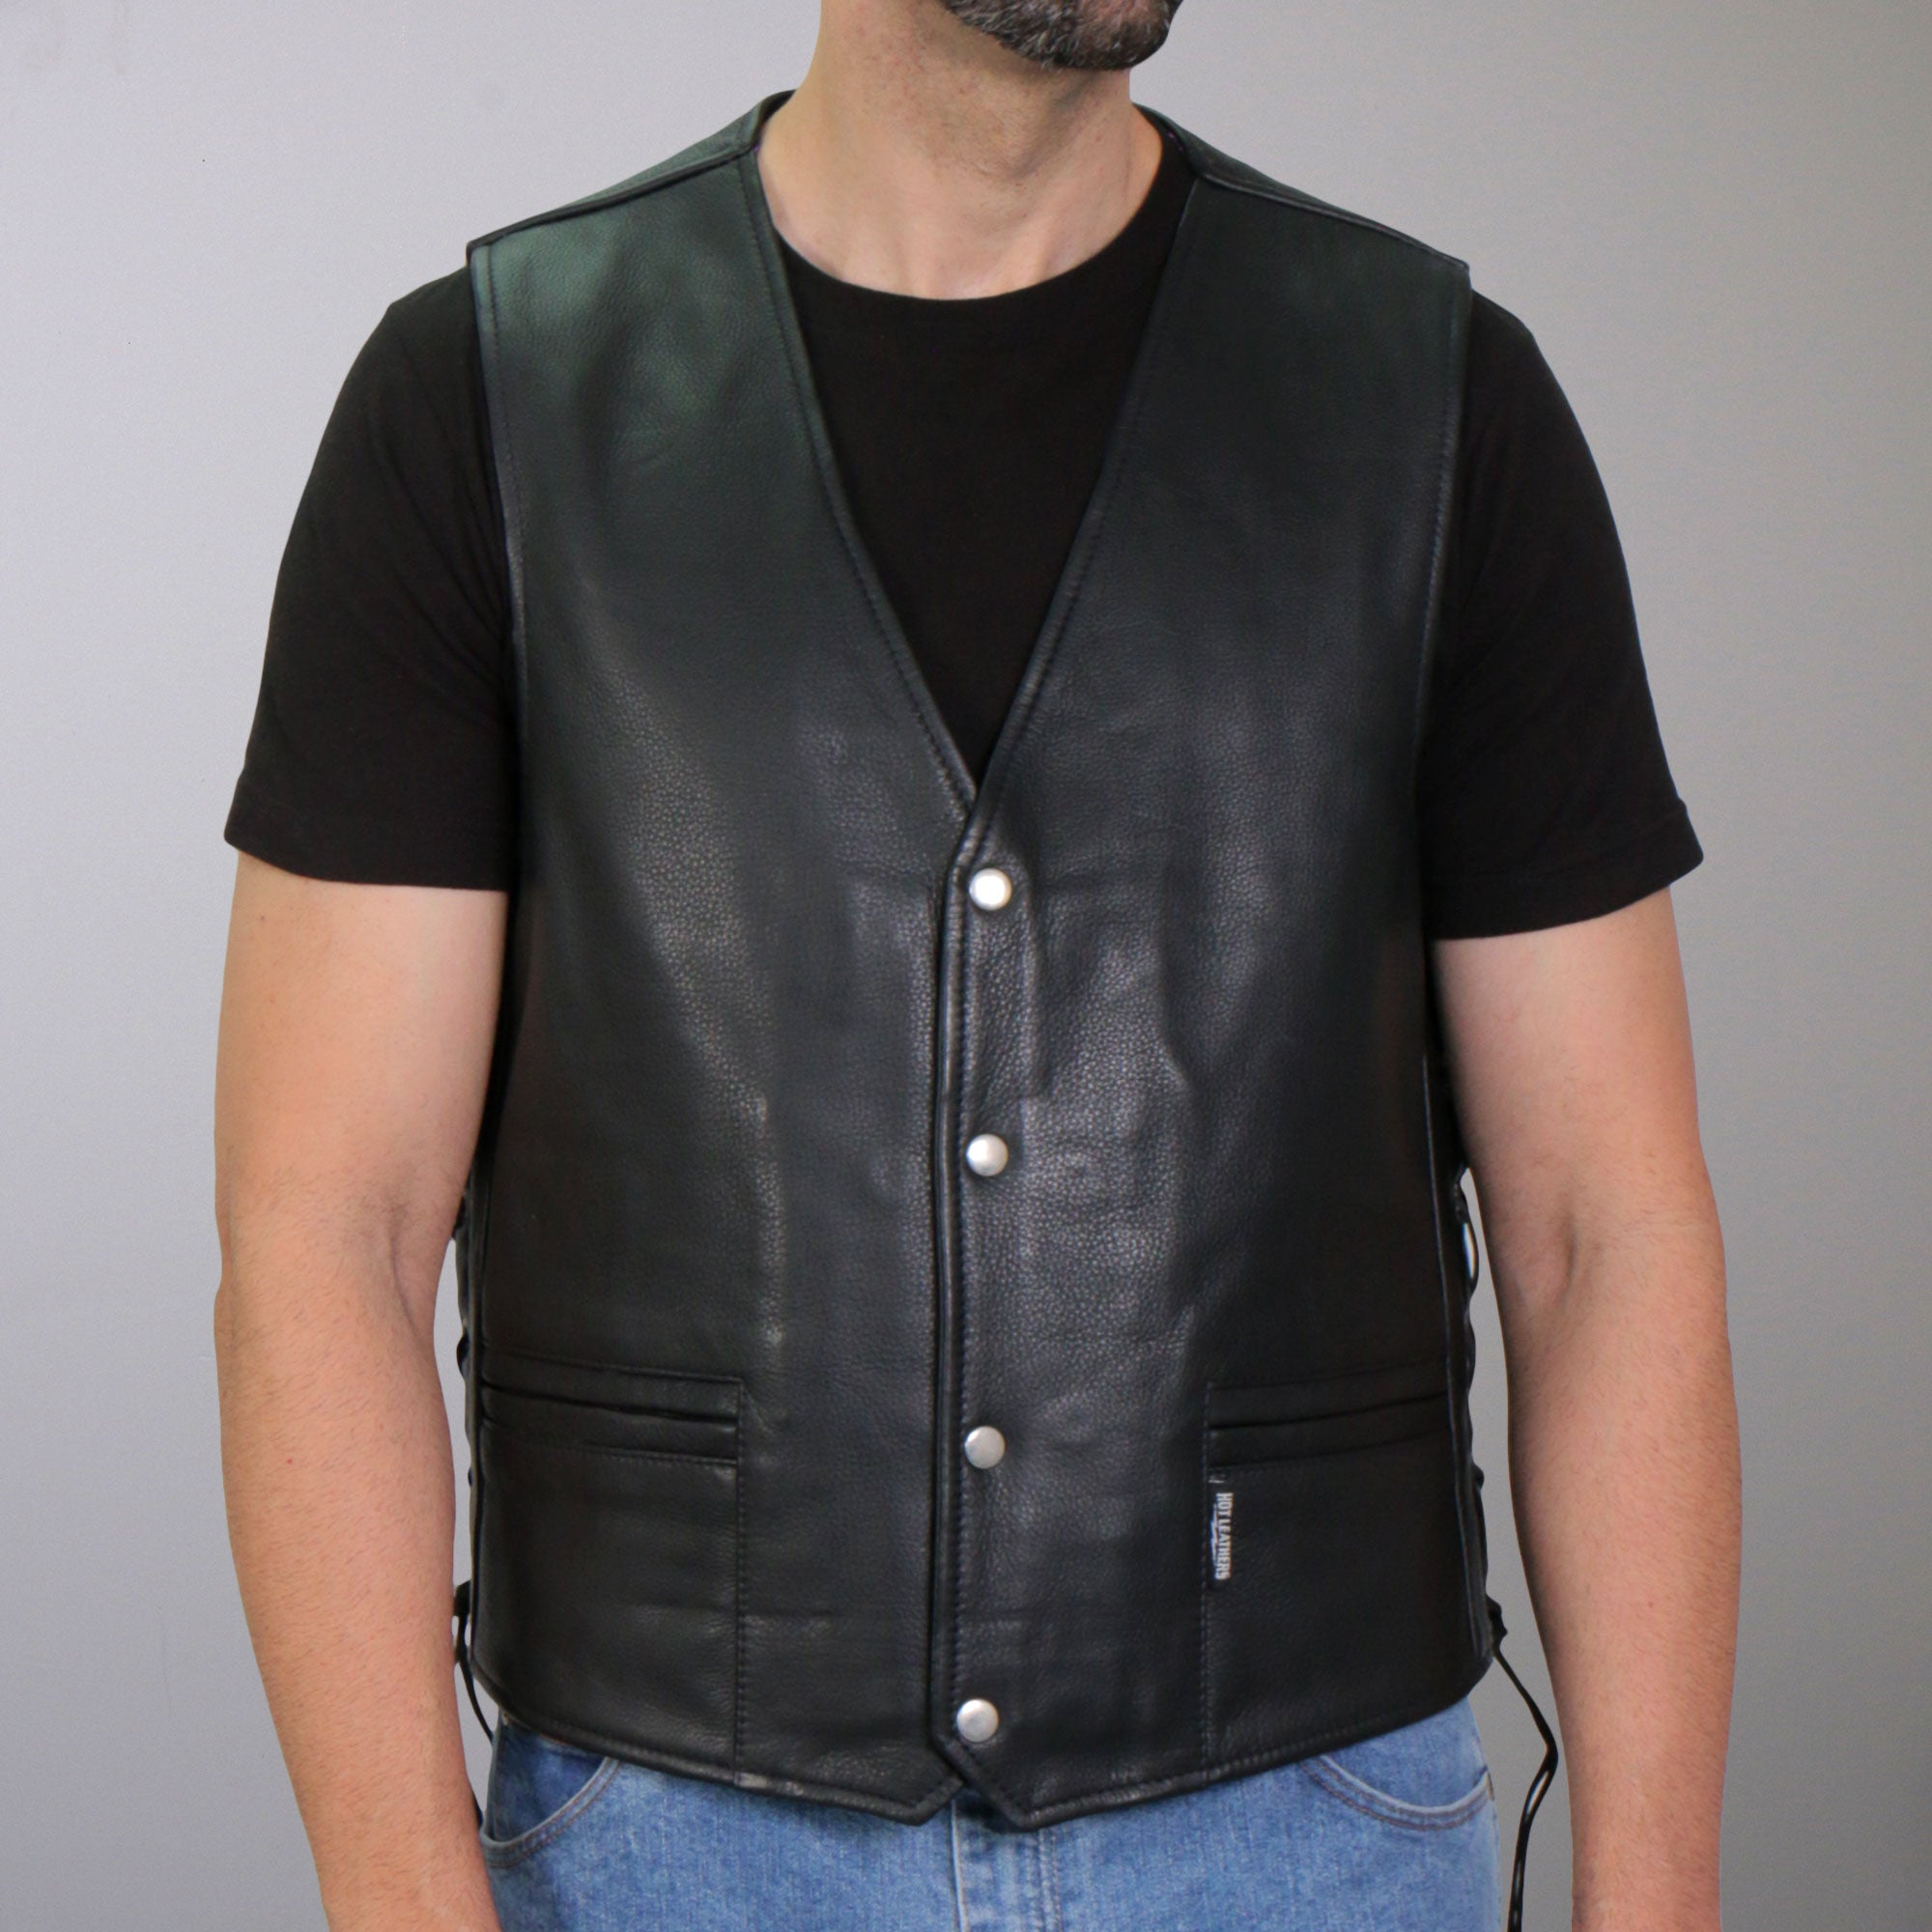 Hot Leathers Men's Vest Skulls Make Skulls with Skull Liner and Concealed Carry Pockets